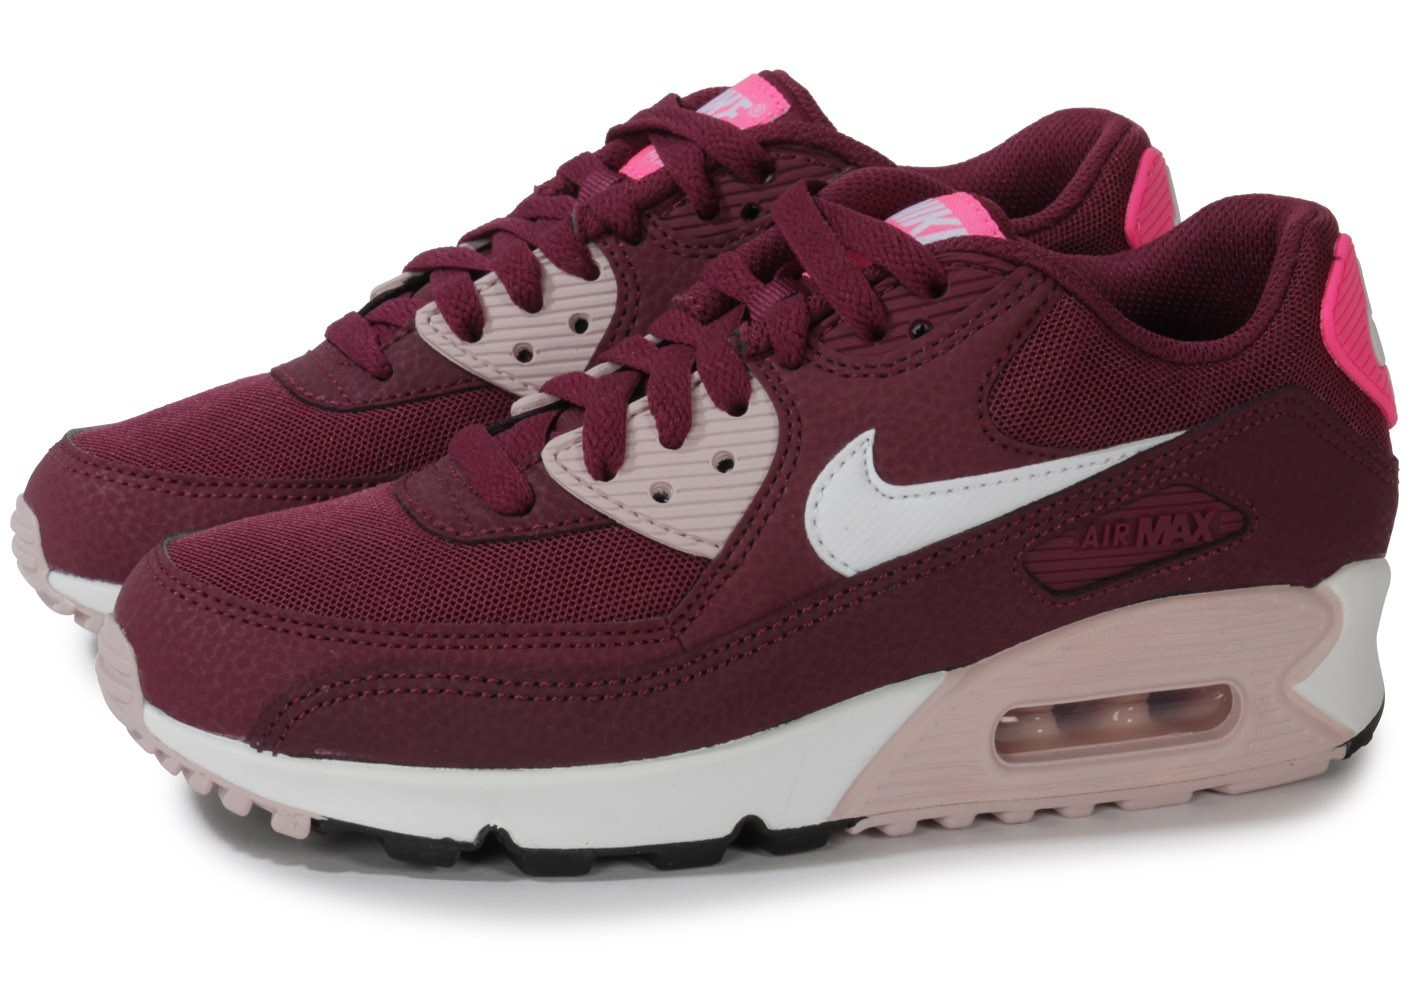 plus de photos 8f3de 0423b air max one femme Bordeaux